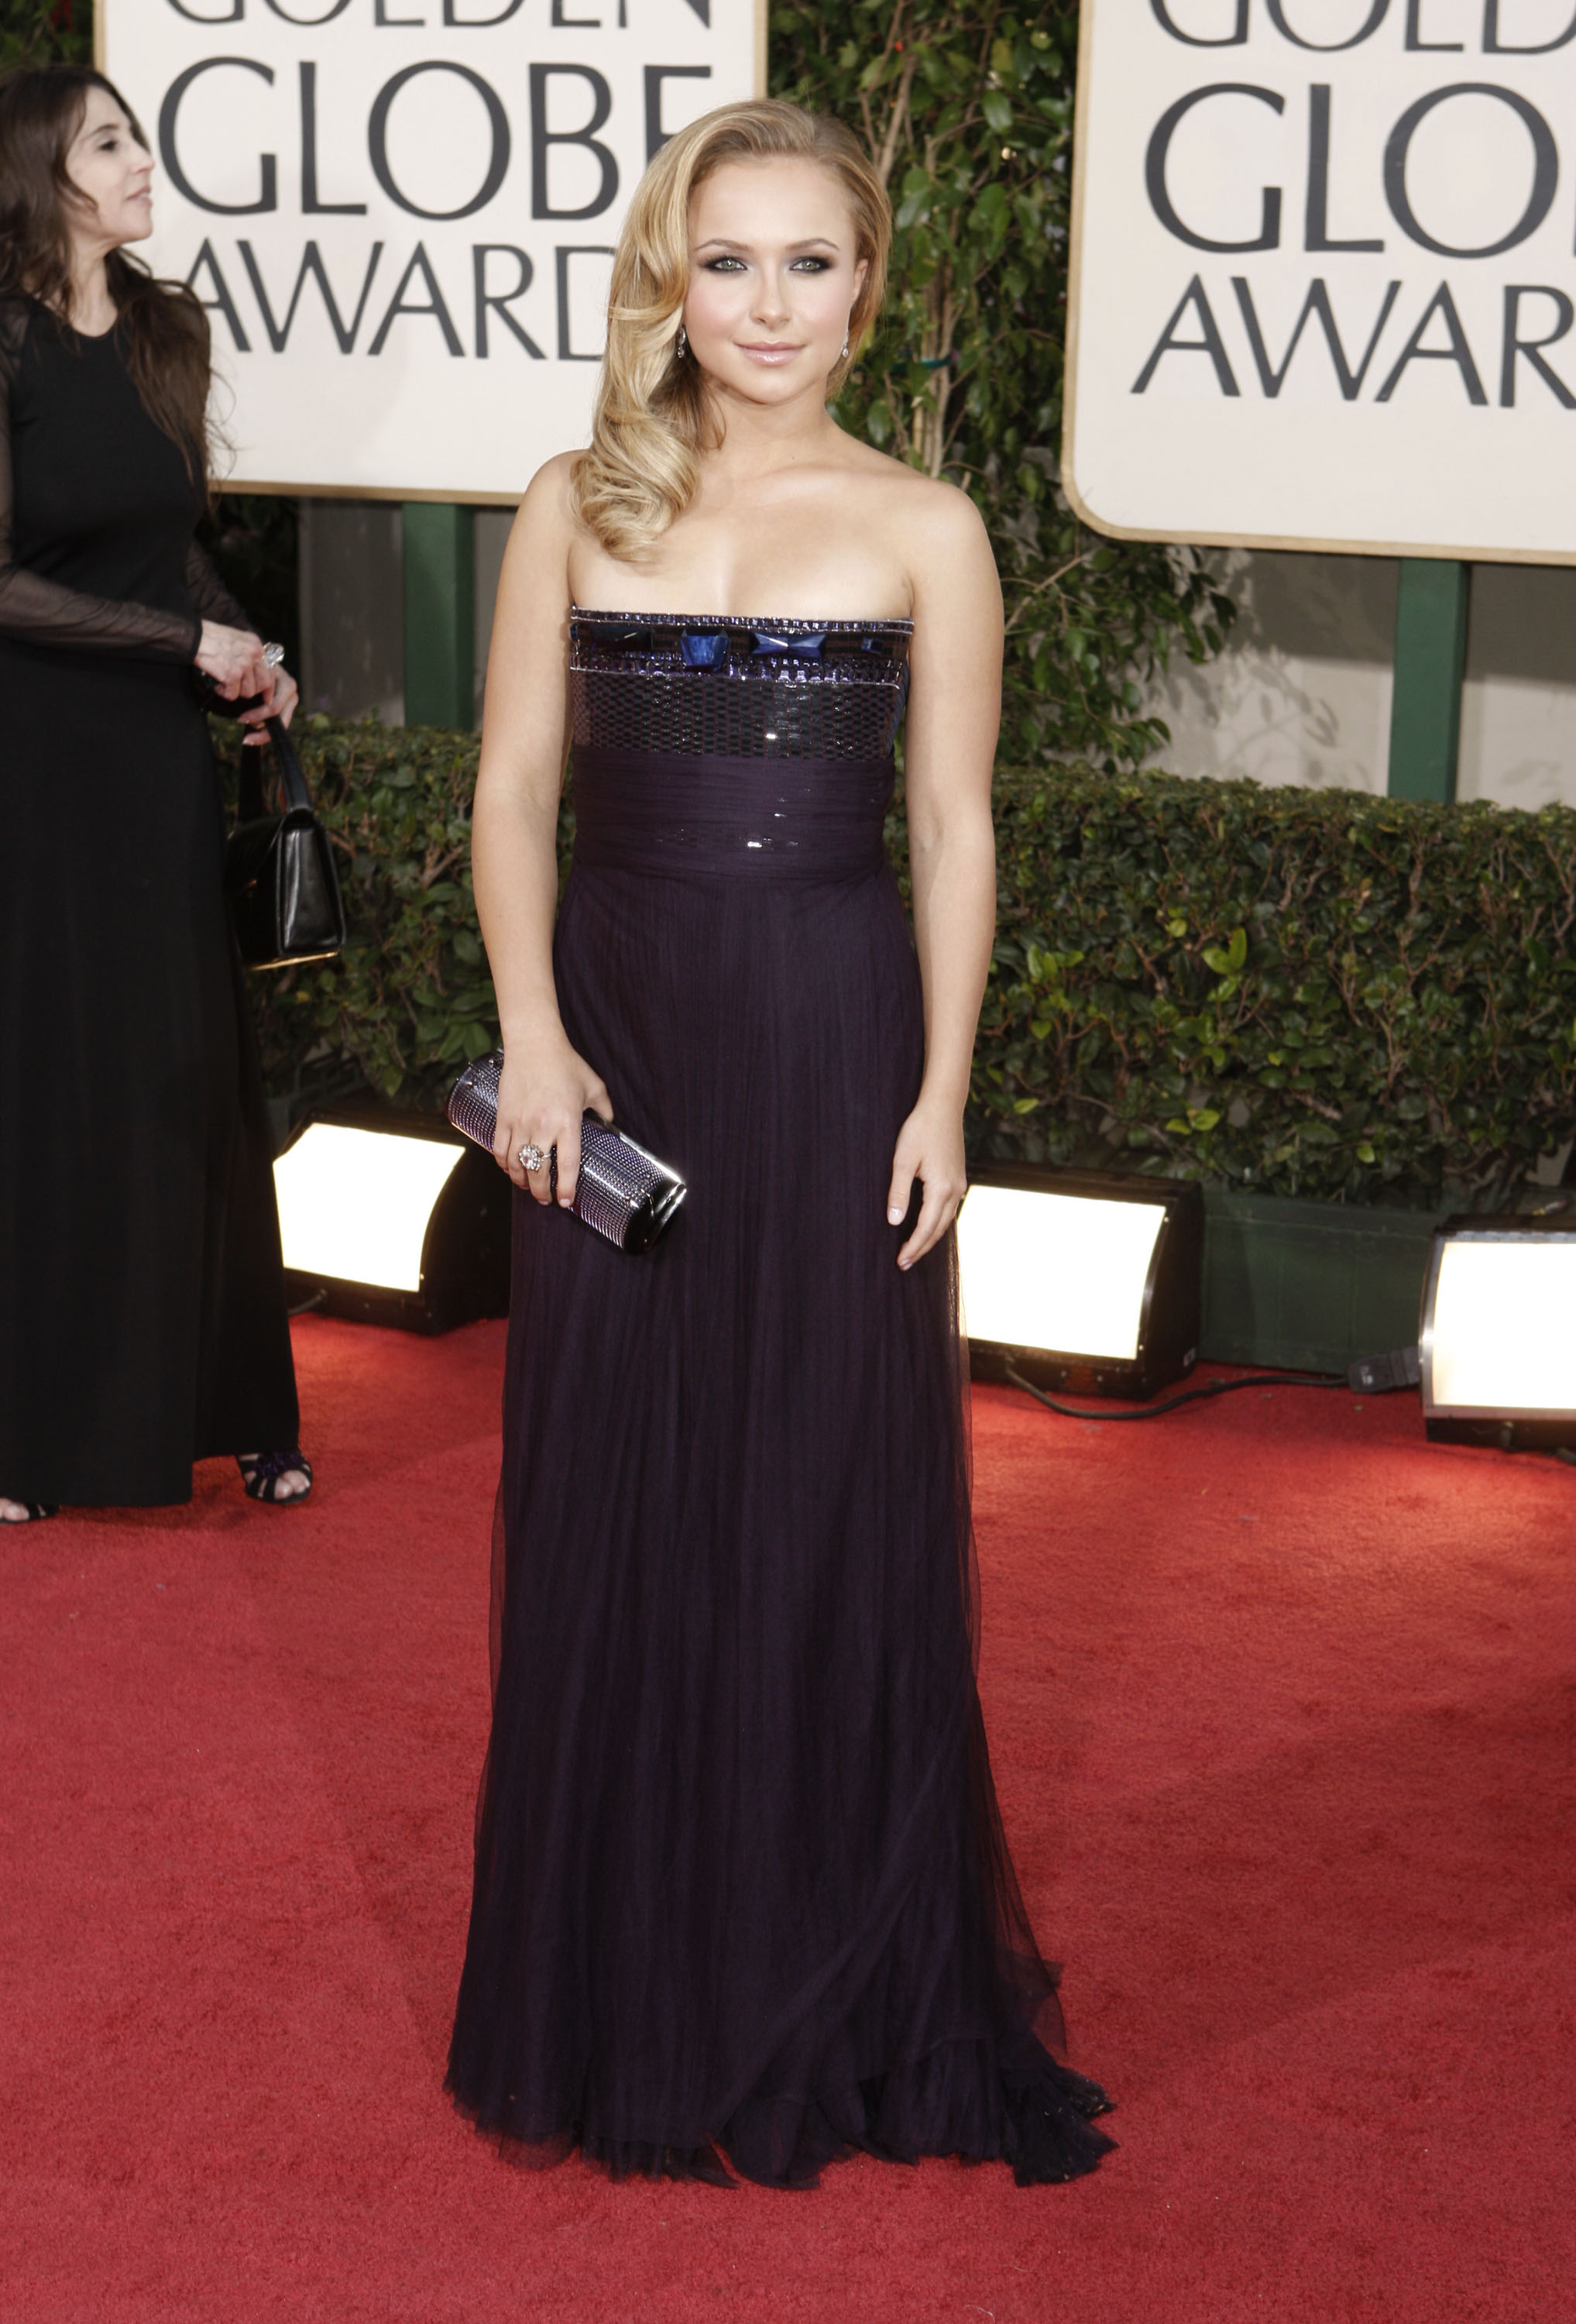 22420_Celebutopia-Hayden_Panettiere_arrives_at_the_66th_Annual_Golden_Globe_Awards-02_122_30lo.jpg